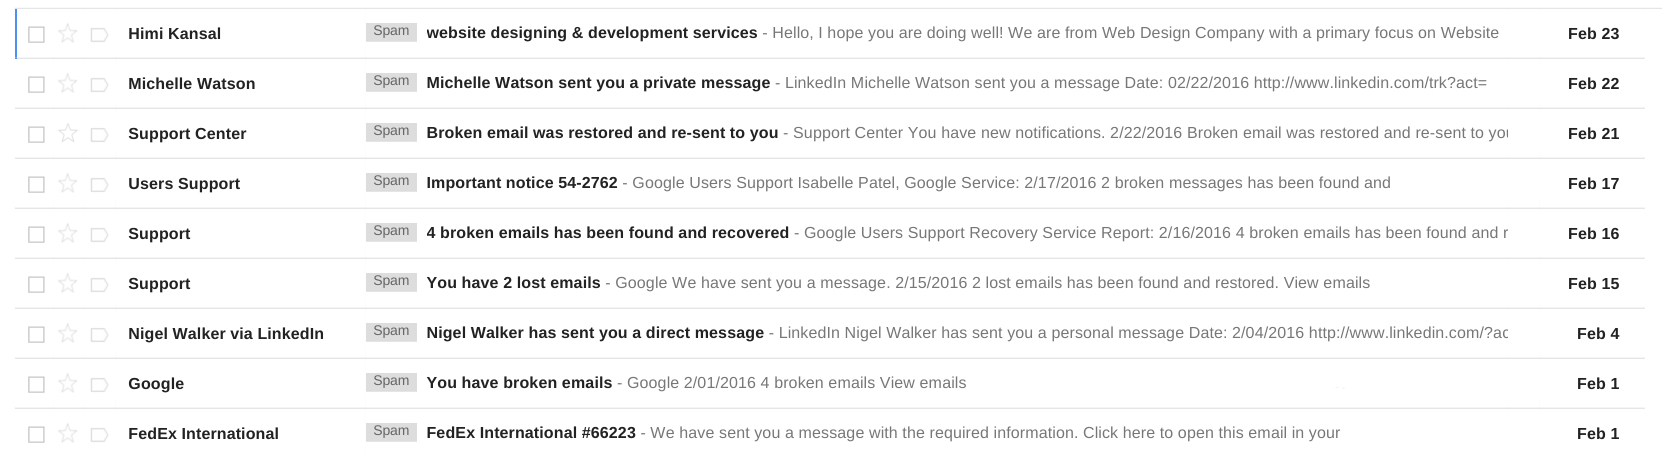 Inbox with Spam